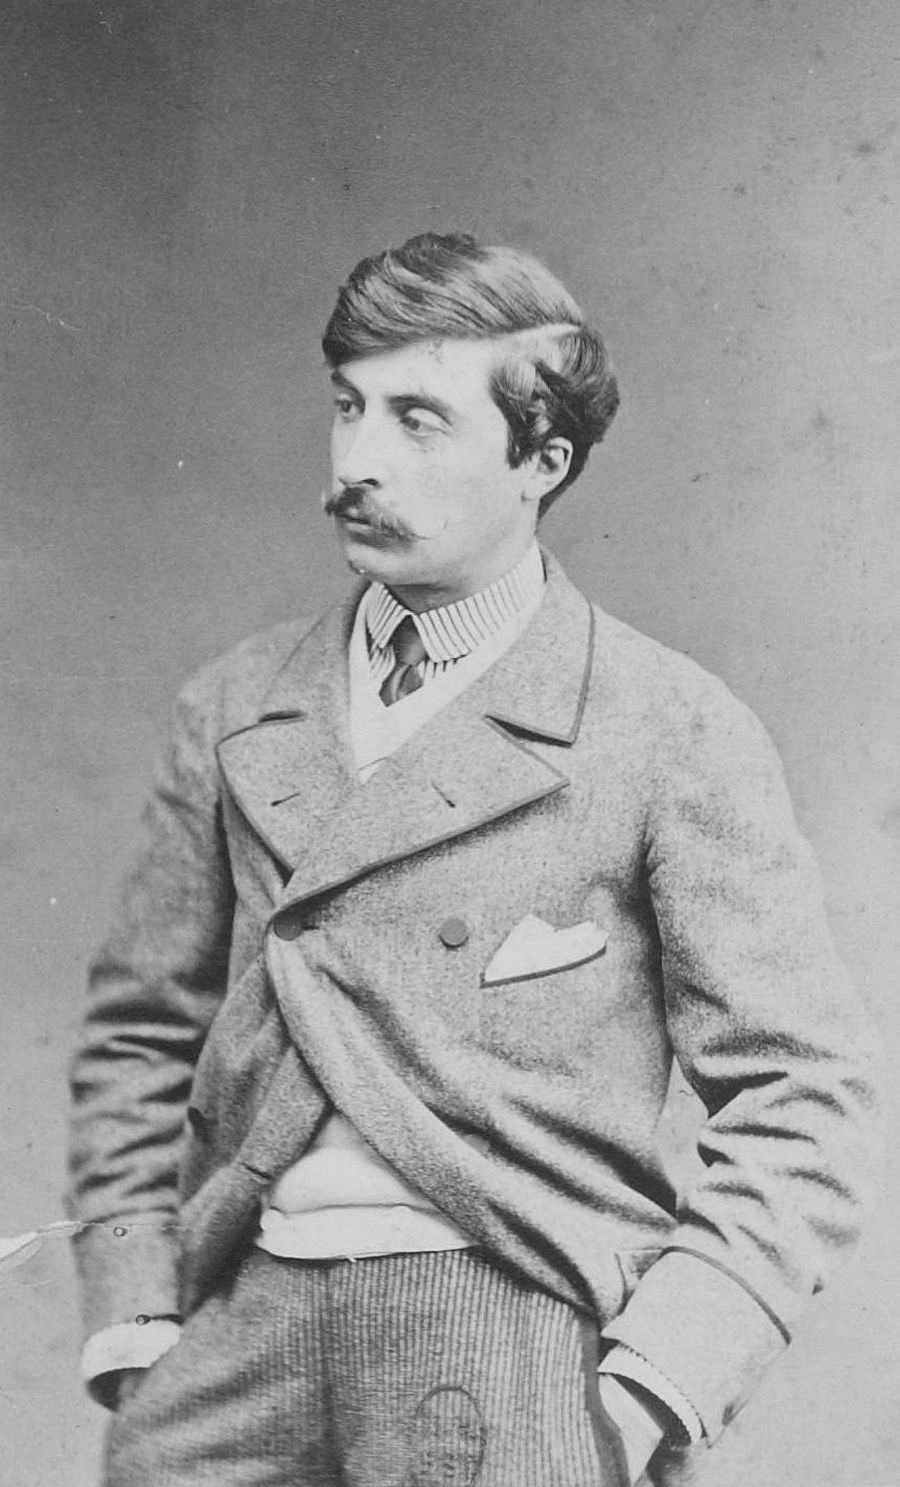 Portrait of James Tissot, between 1860 and 1875 by Robert Jefferson Bingham